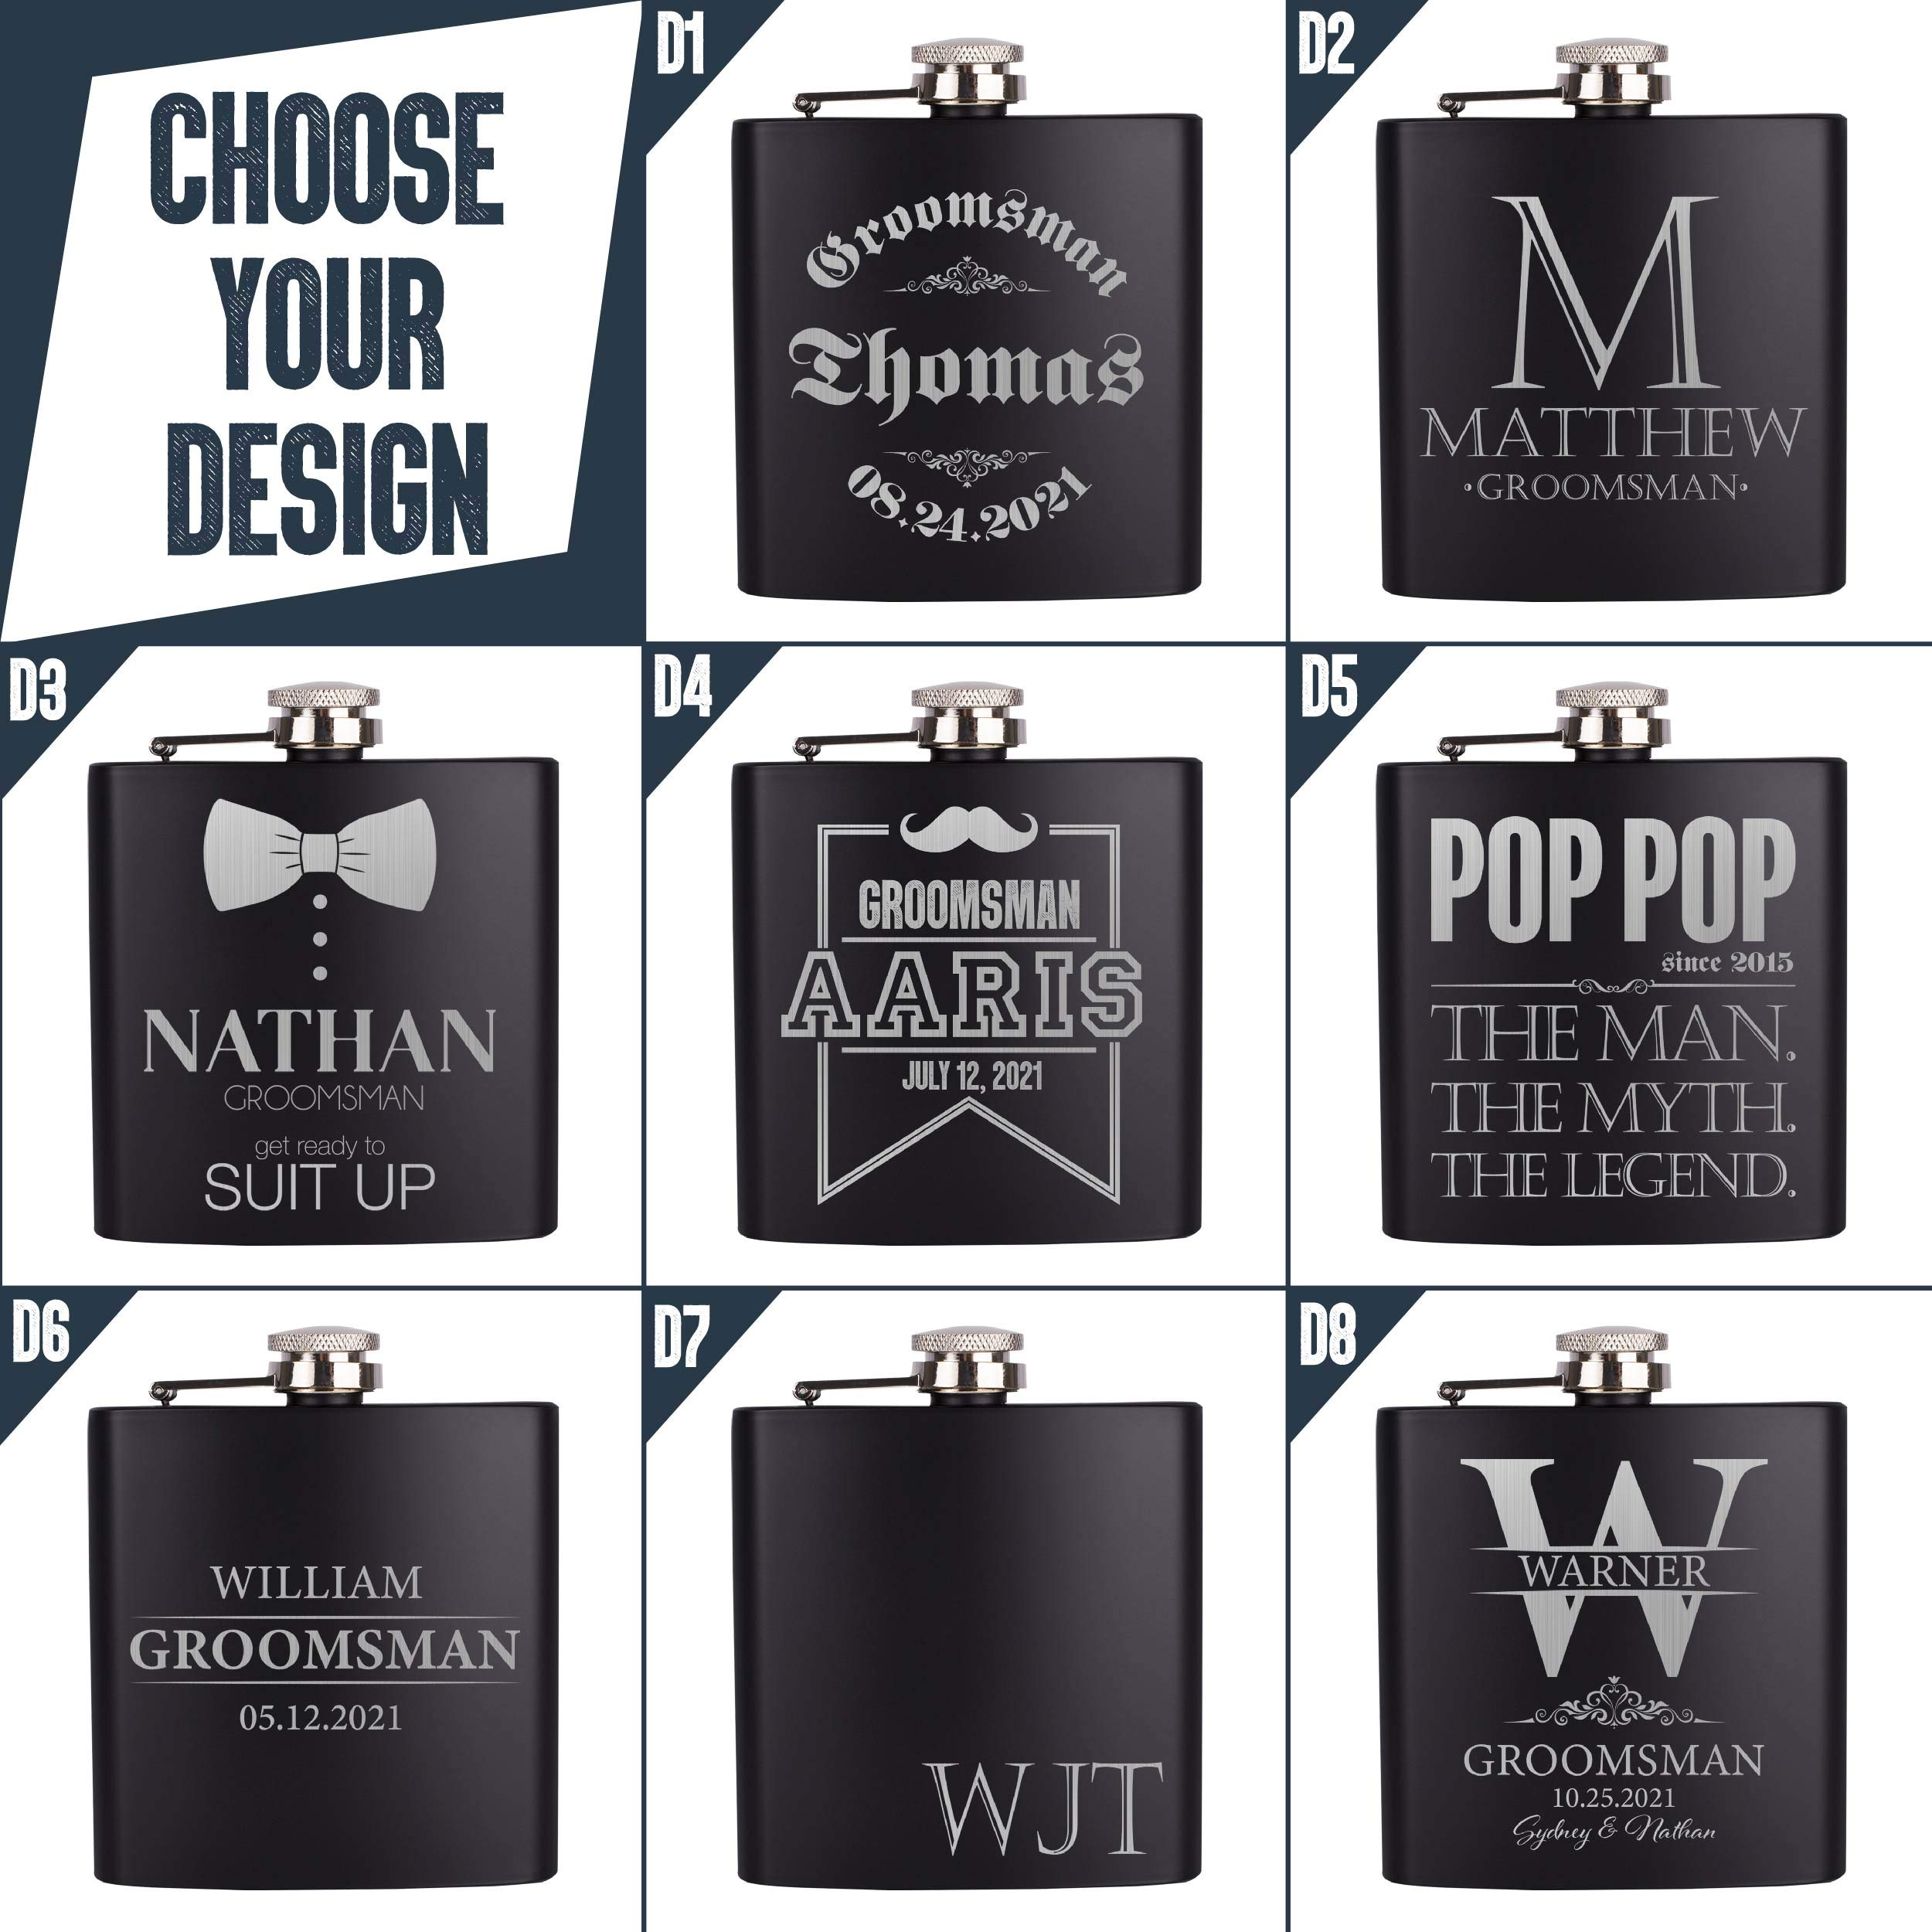 Personalizedgiftland Personalized Flask, Set Of 6 - Customized Flask Groomsmen Gifts For Wedding Favors, Personalized Groomsman gift - Stainless Steel Engraves Flasks w Gift Box Options - 6oz, Black by PersonalizedGiftLand (Image #3)